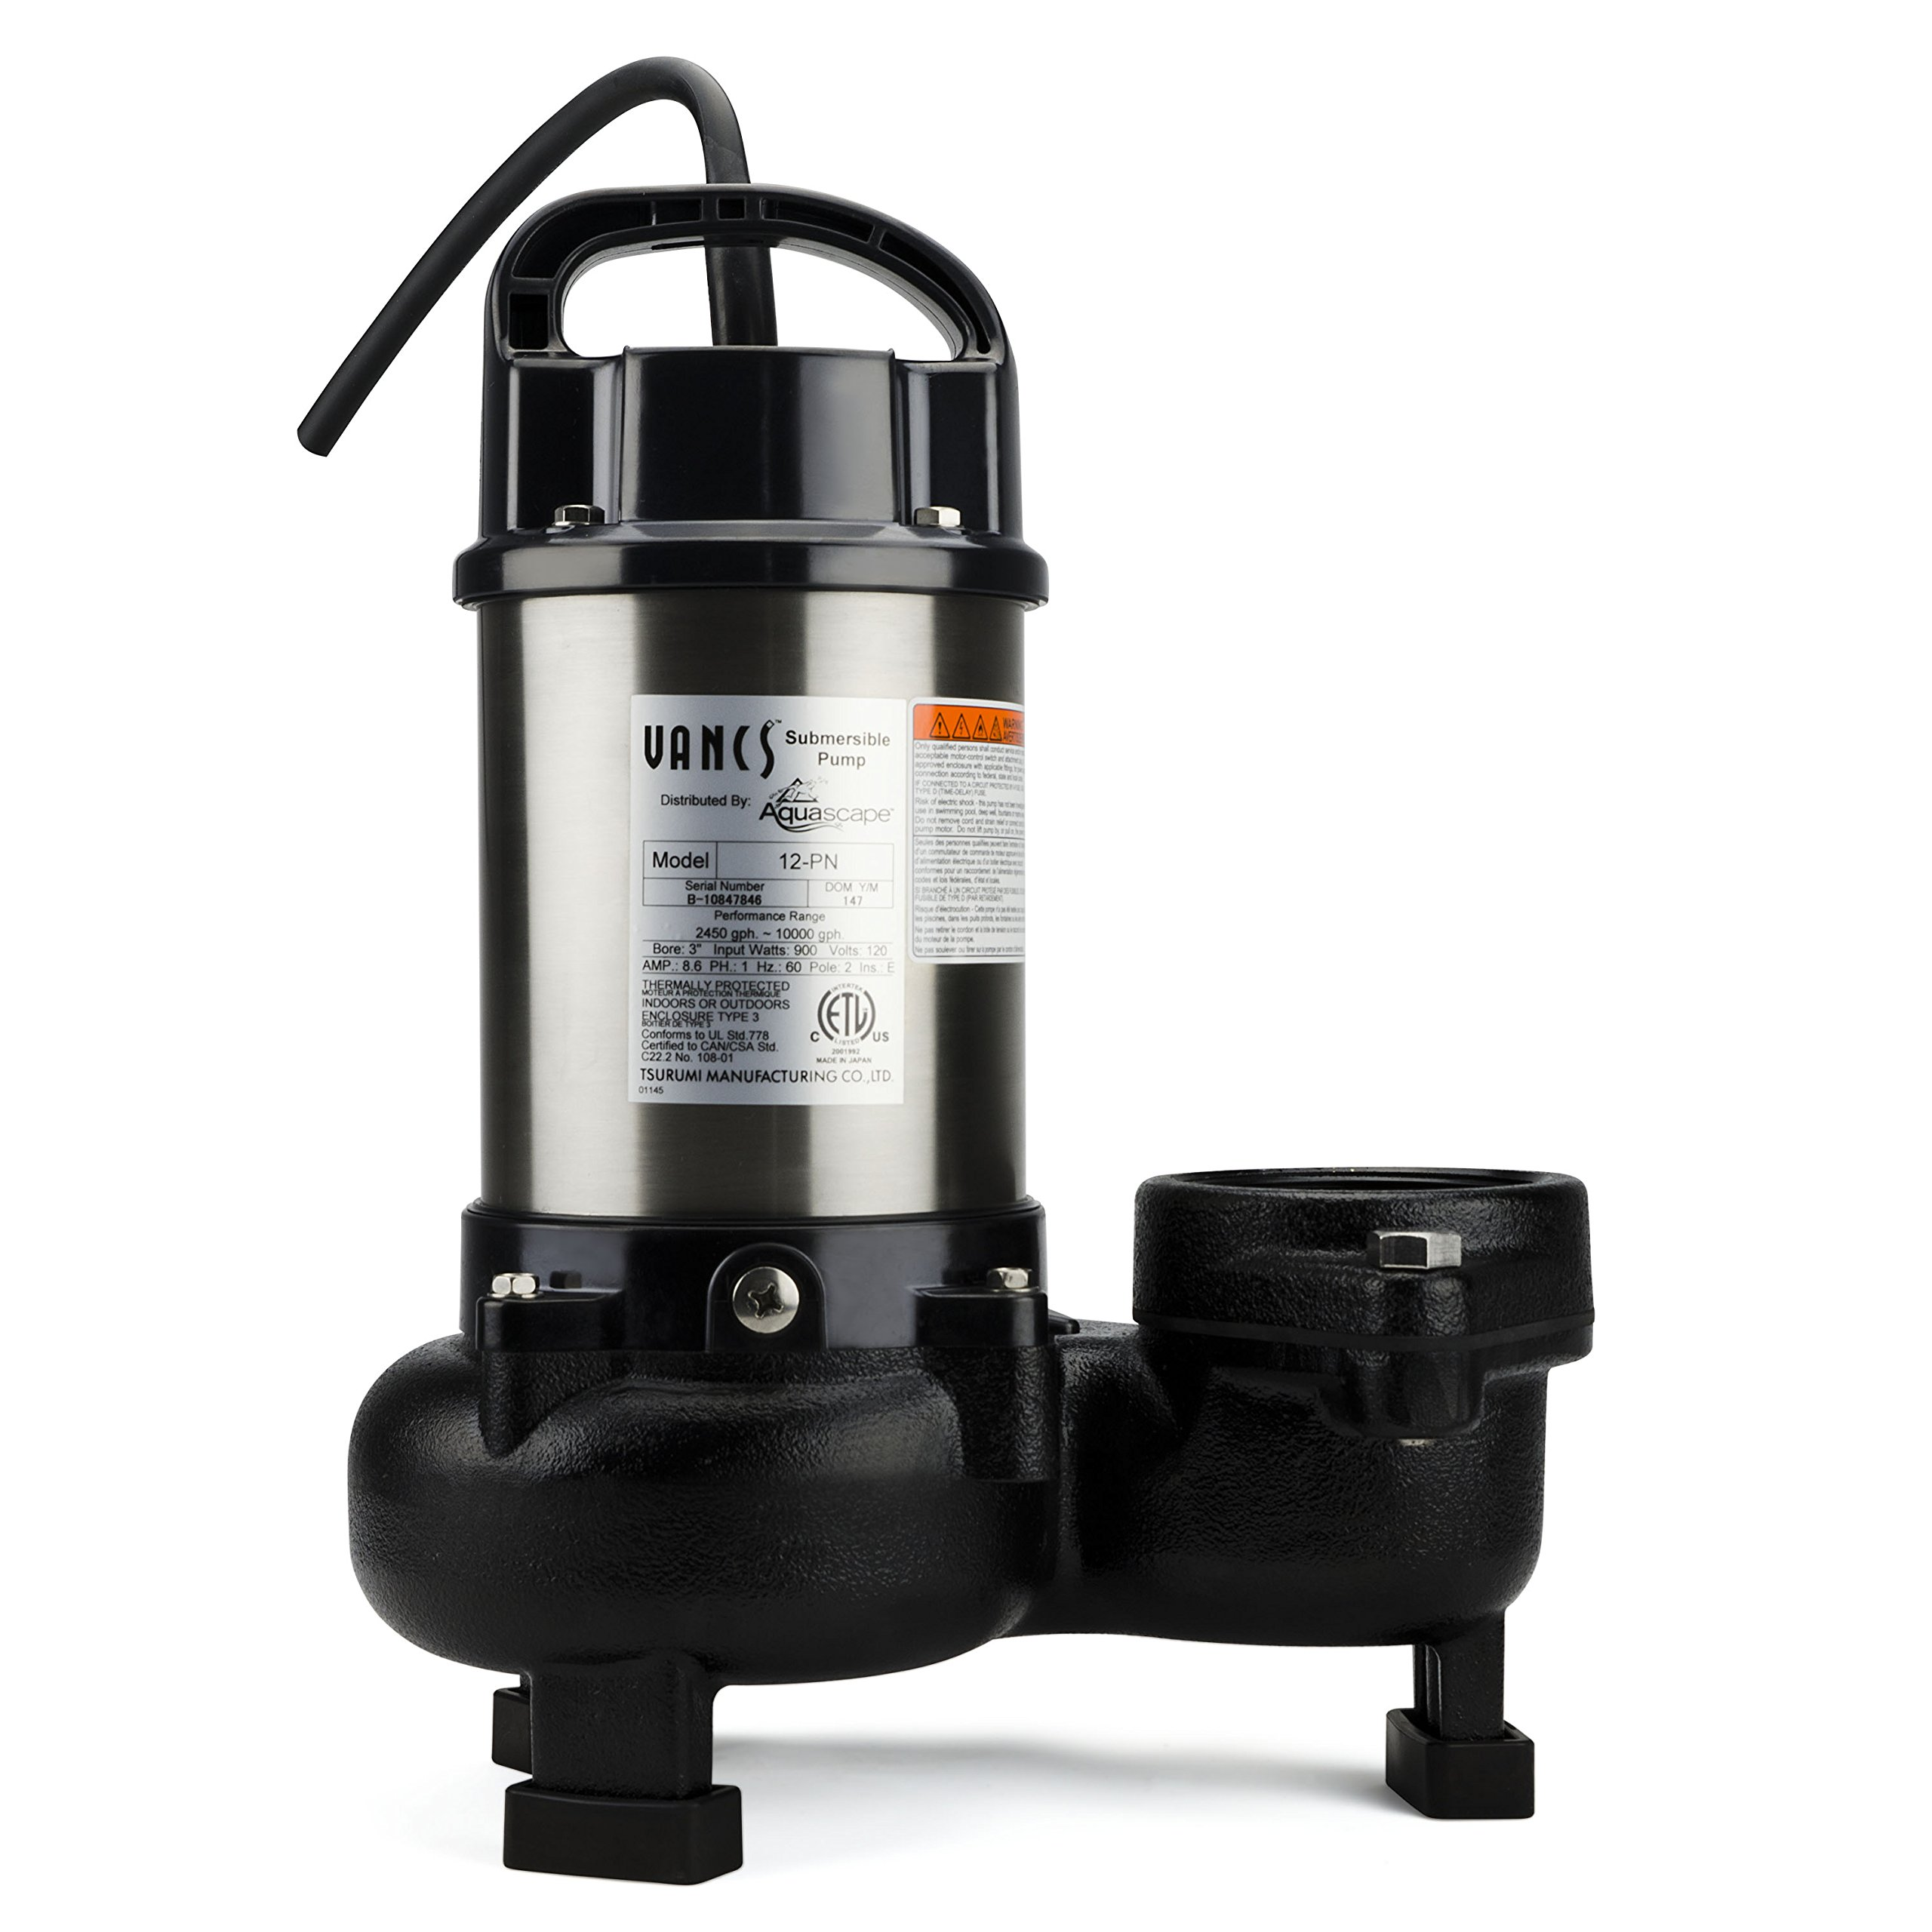 Aquascape 30391 Tsurumi 12pn Submersible Pump For Ponds Skimmer Filters And Ebay